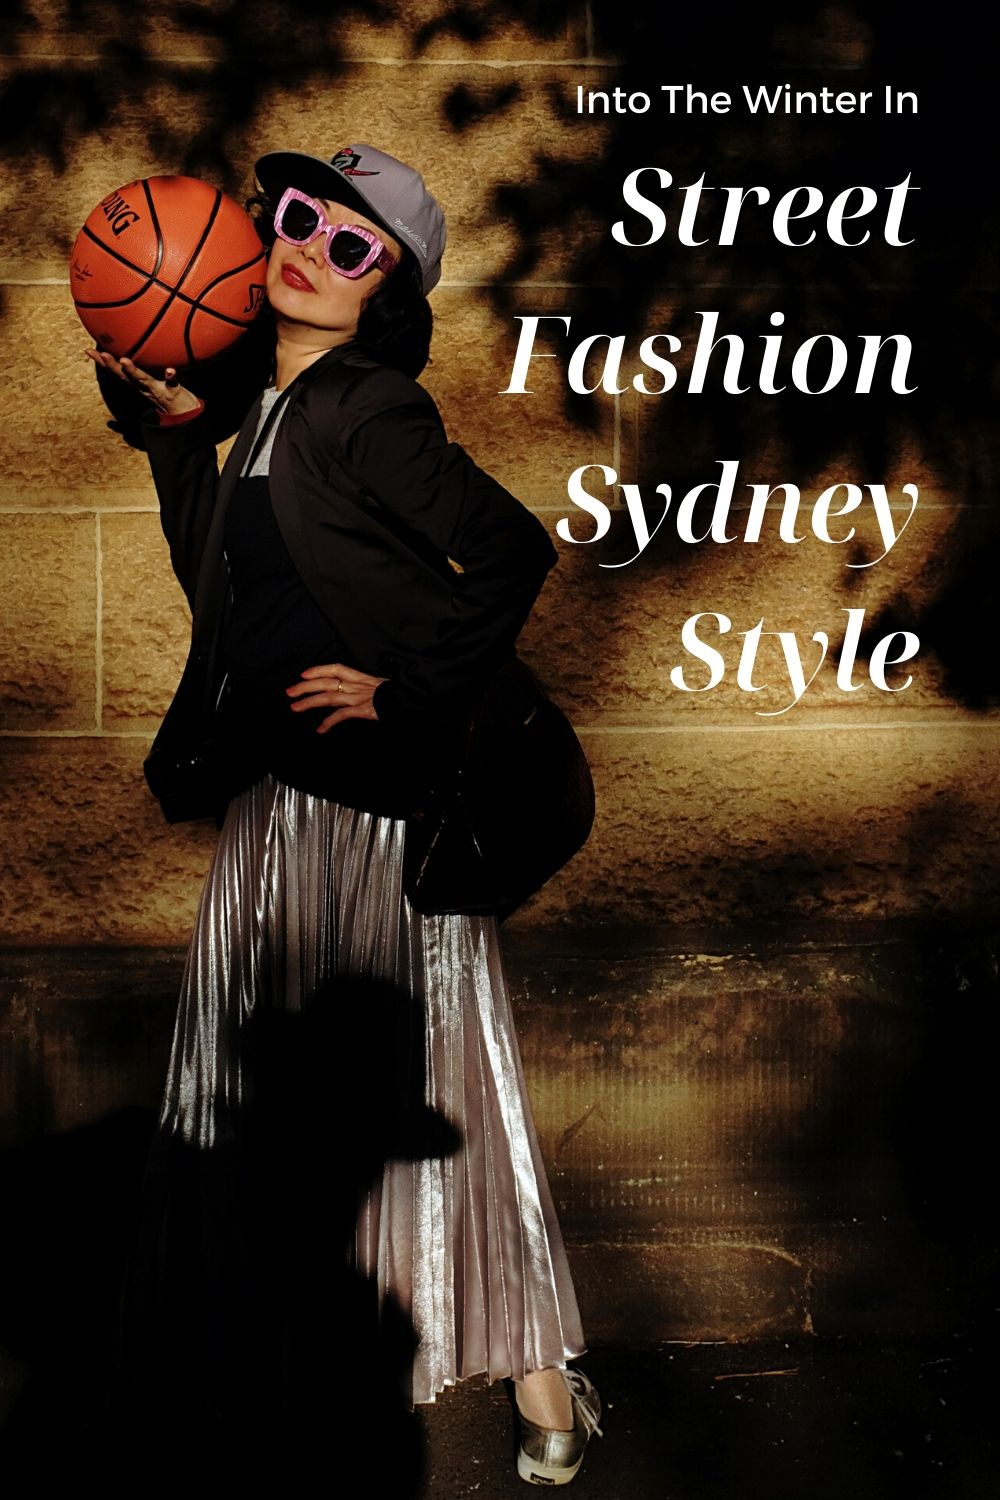 Into the Winter in Street Fashion Sydney Style. Portraits by Kent Johnson for White Caviar Life.